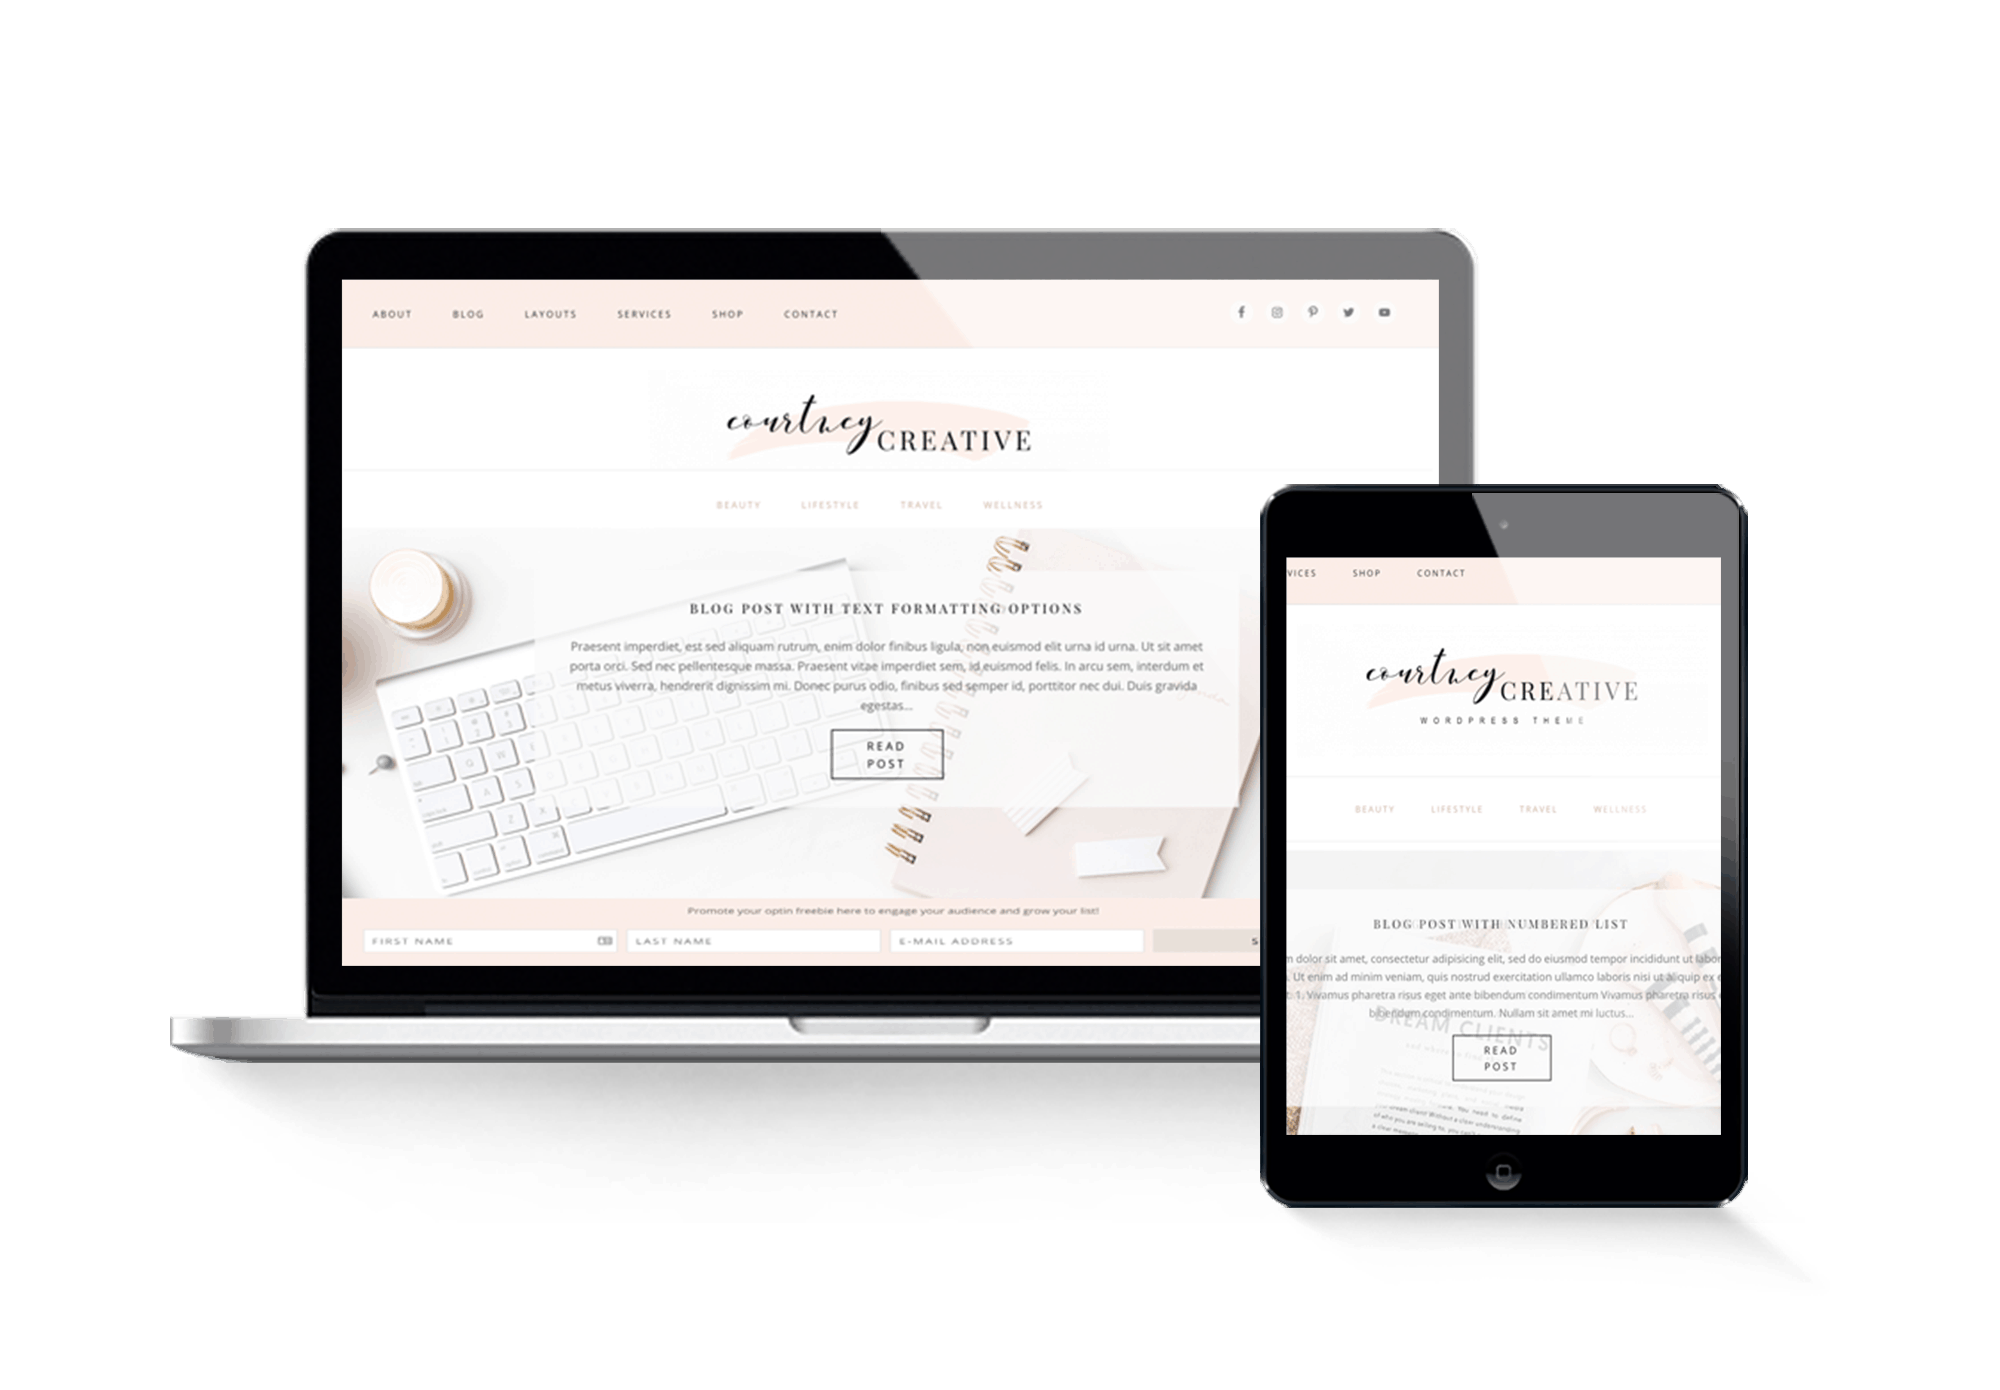 courtney creative feminine wordpress theme design for bloggers